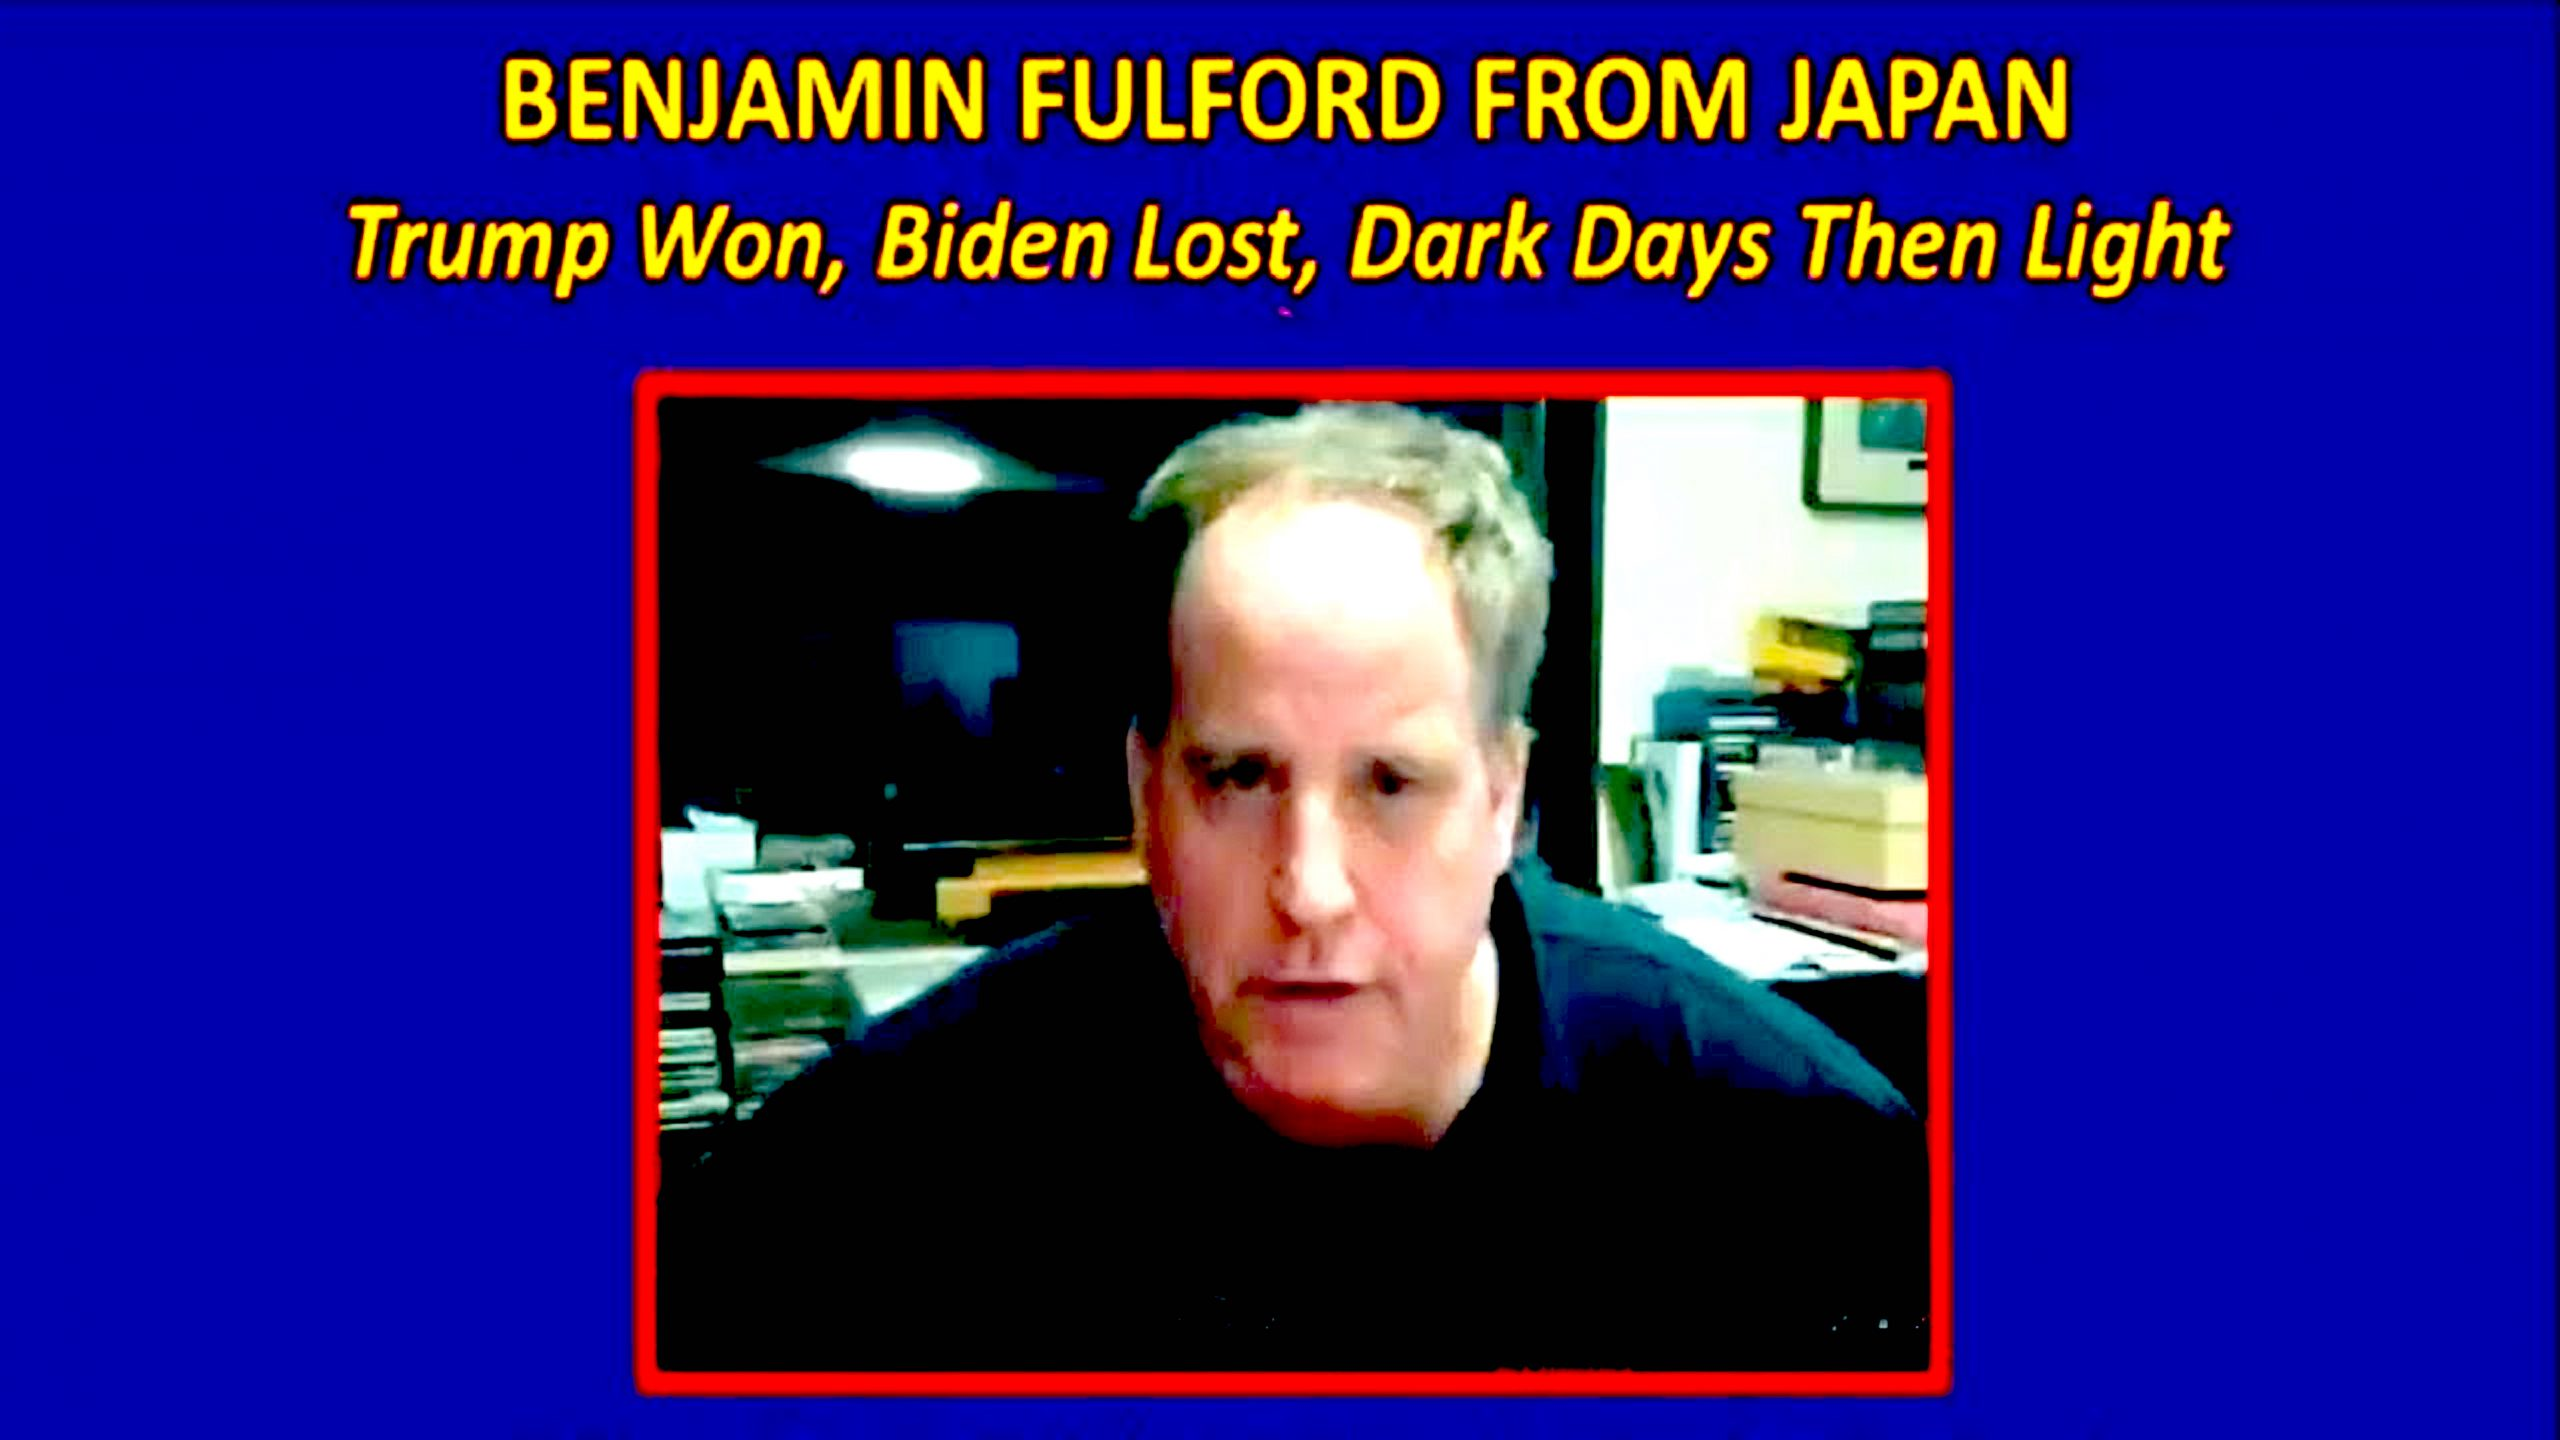 Benjamin Fulford Trump Won, Biden Lost, Dark Days Then Light (foto YouTube)